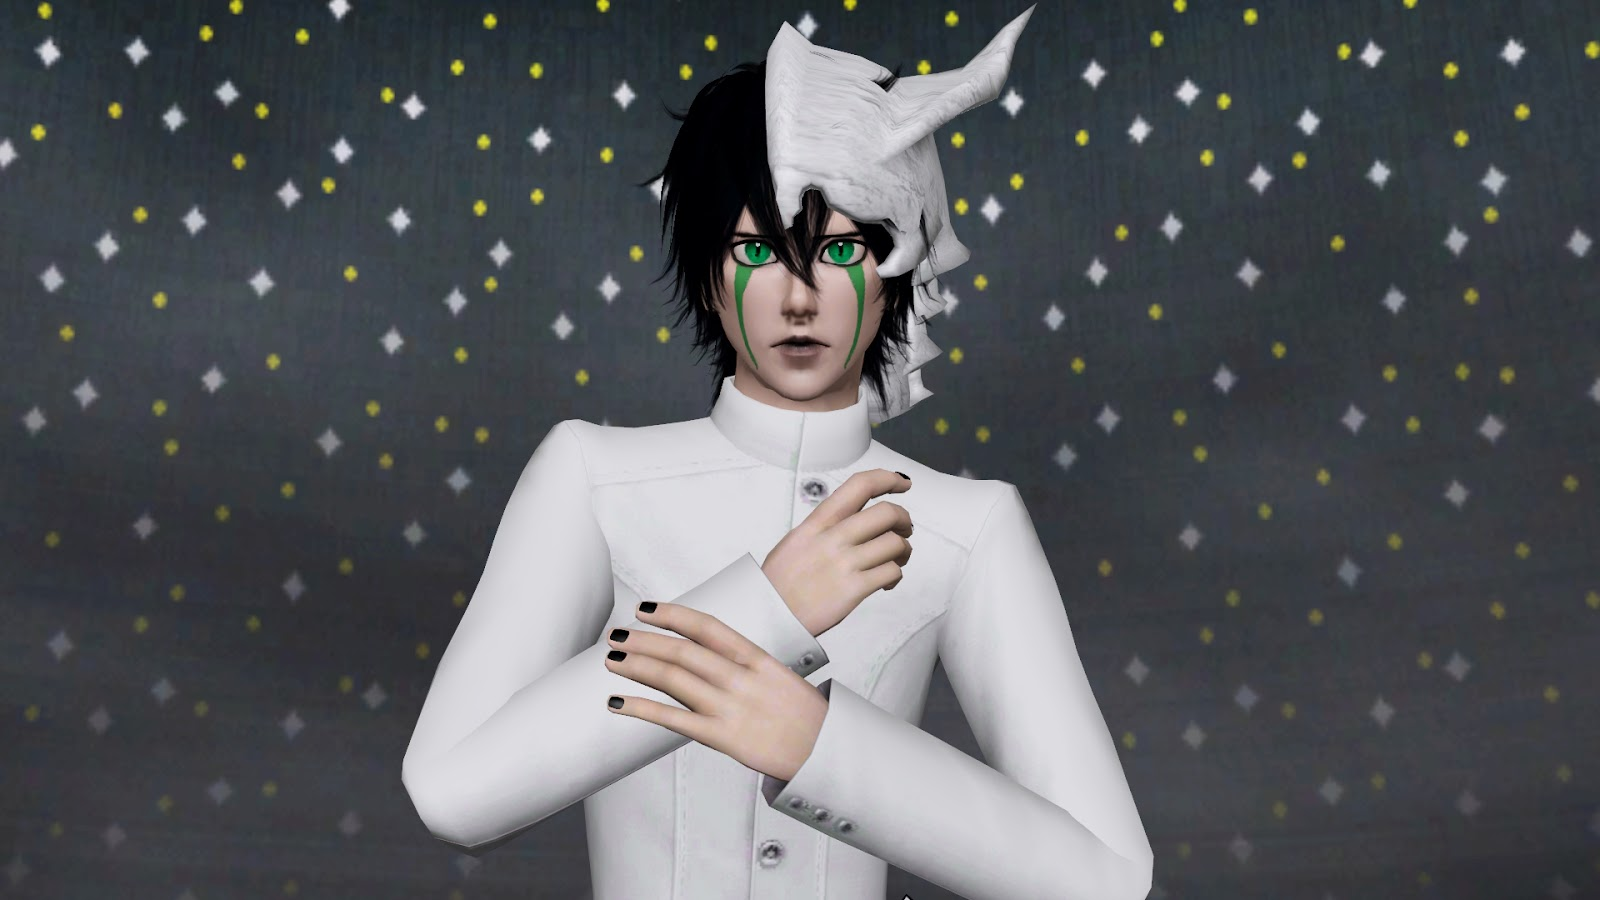 Sims 4 Anime Characters : Ng sims ulquiorra schiffer anime